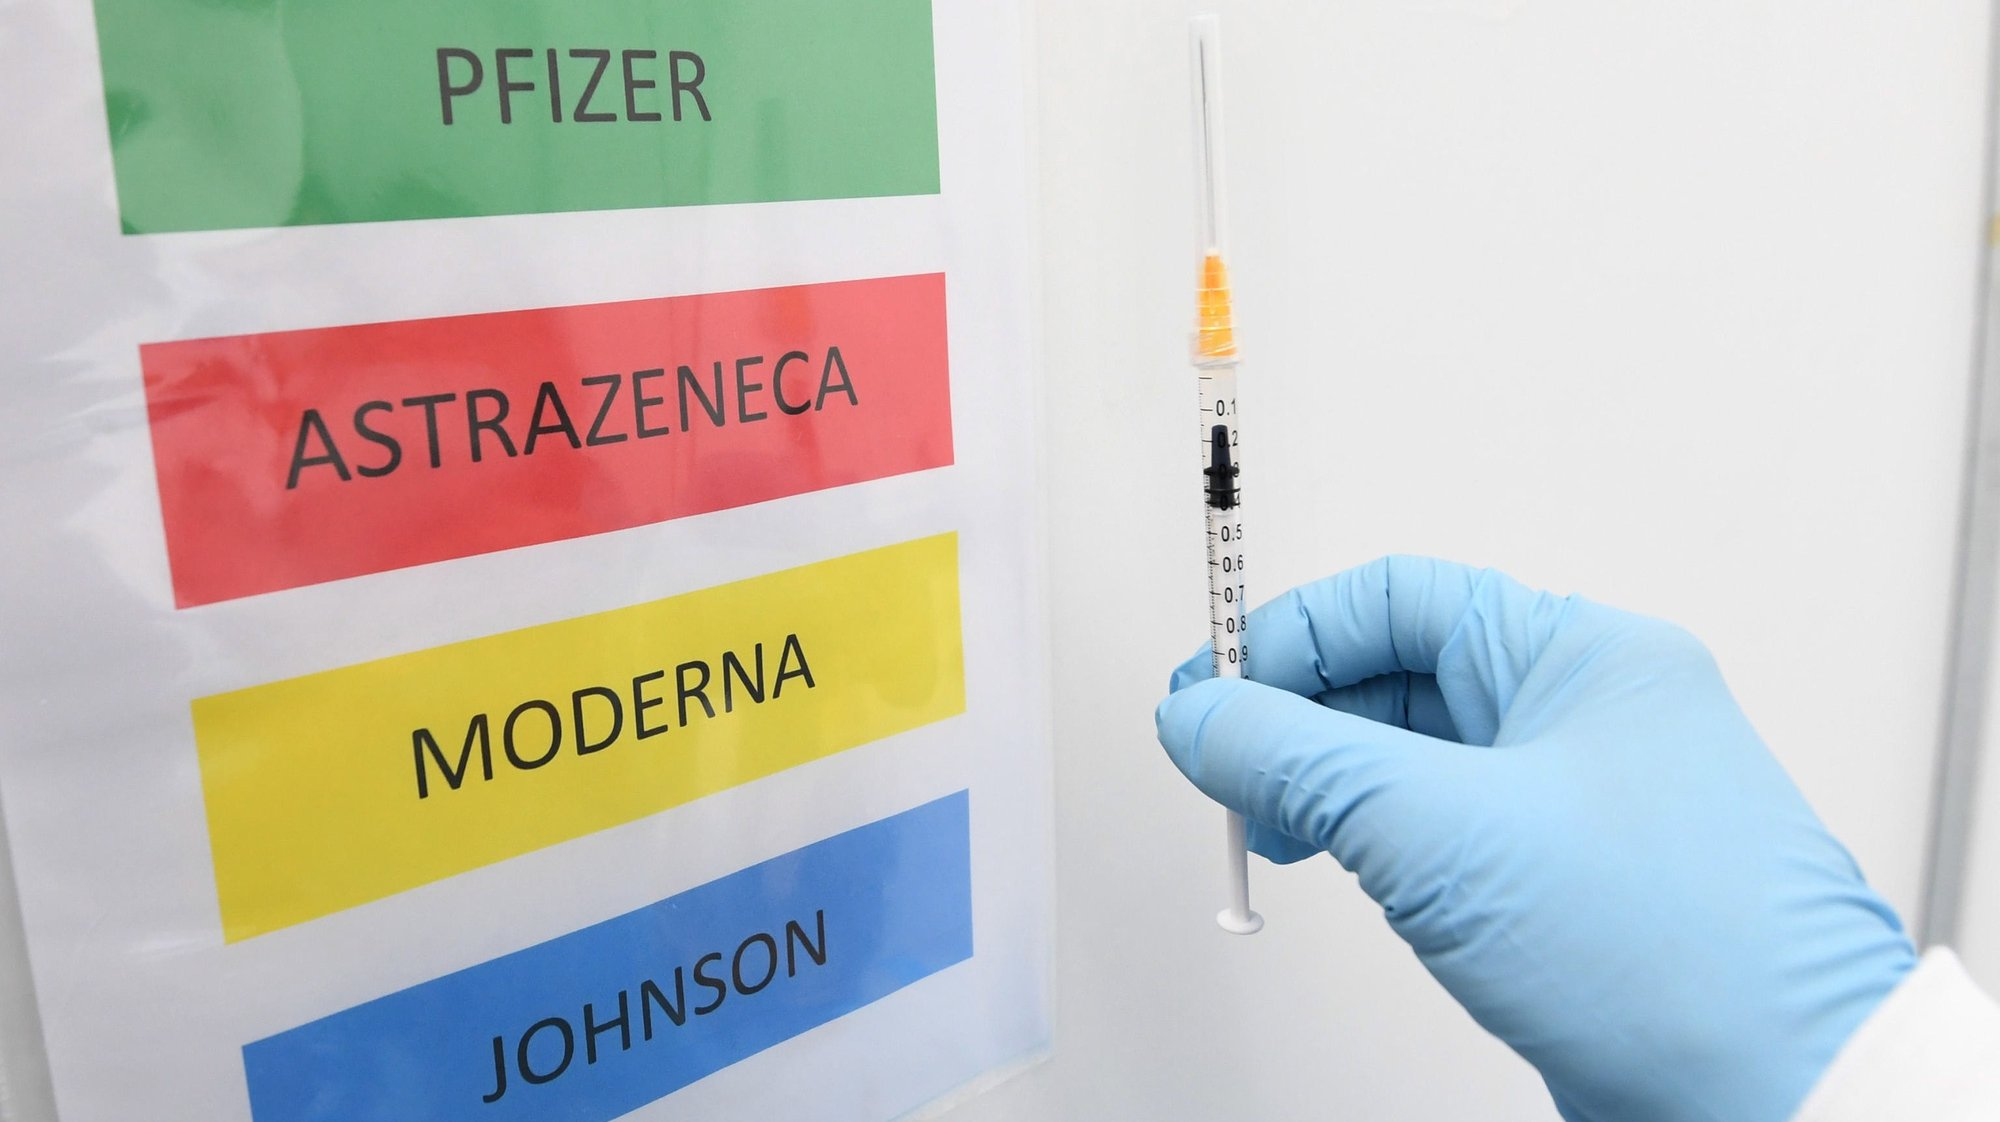 epa09170062 A medical staff holds a syringe next to a color code sign listing the Covid-19 vaccines BioNTech/Pfizer, AstraZeneca, Moderna and Johnson&Johnson at the Covid-19 vaccination hub set up in Novegro, near Milan, Italy, 30 April 2021.  EPA/Daniel Dal Zennaro